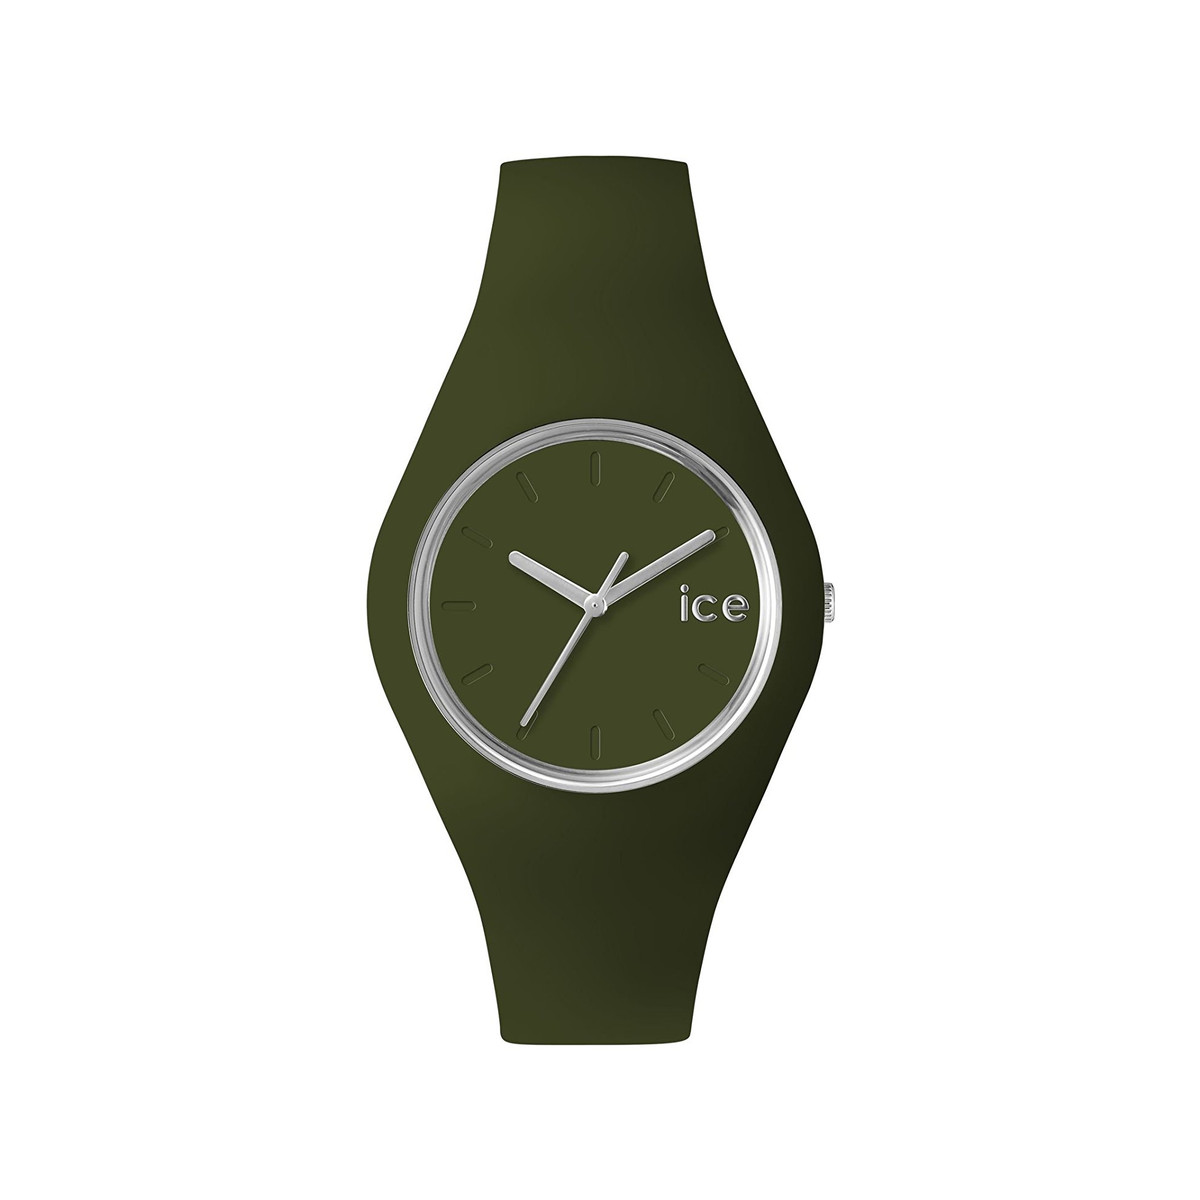 Montre Ice Watch mixte silicone vert kaki